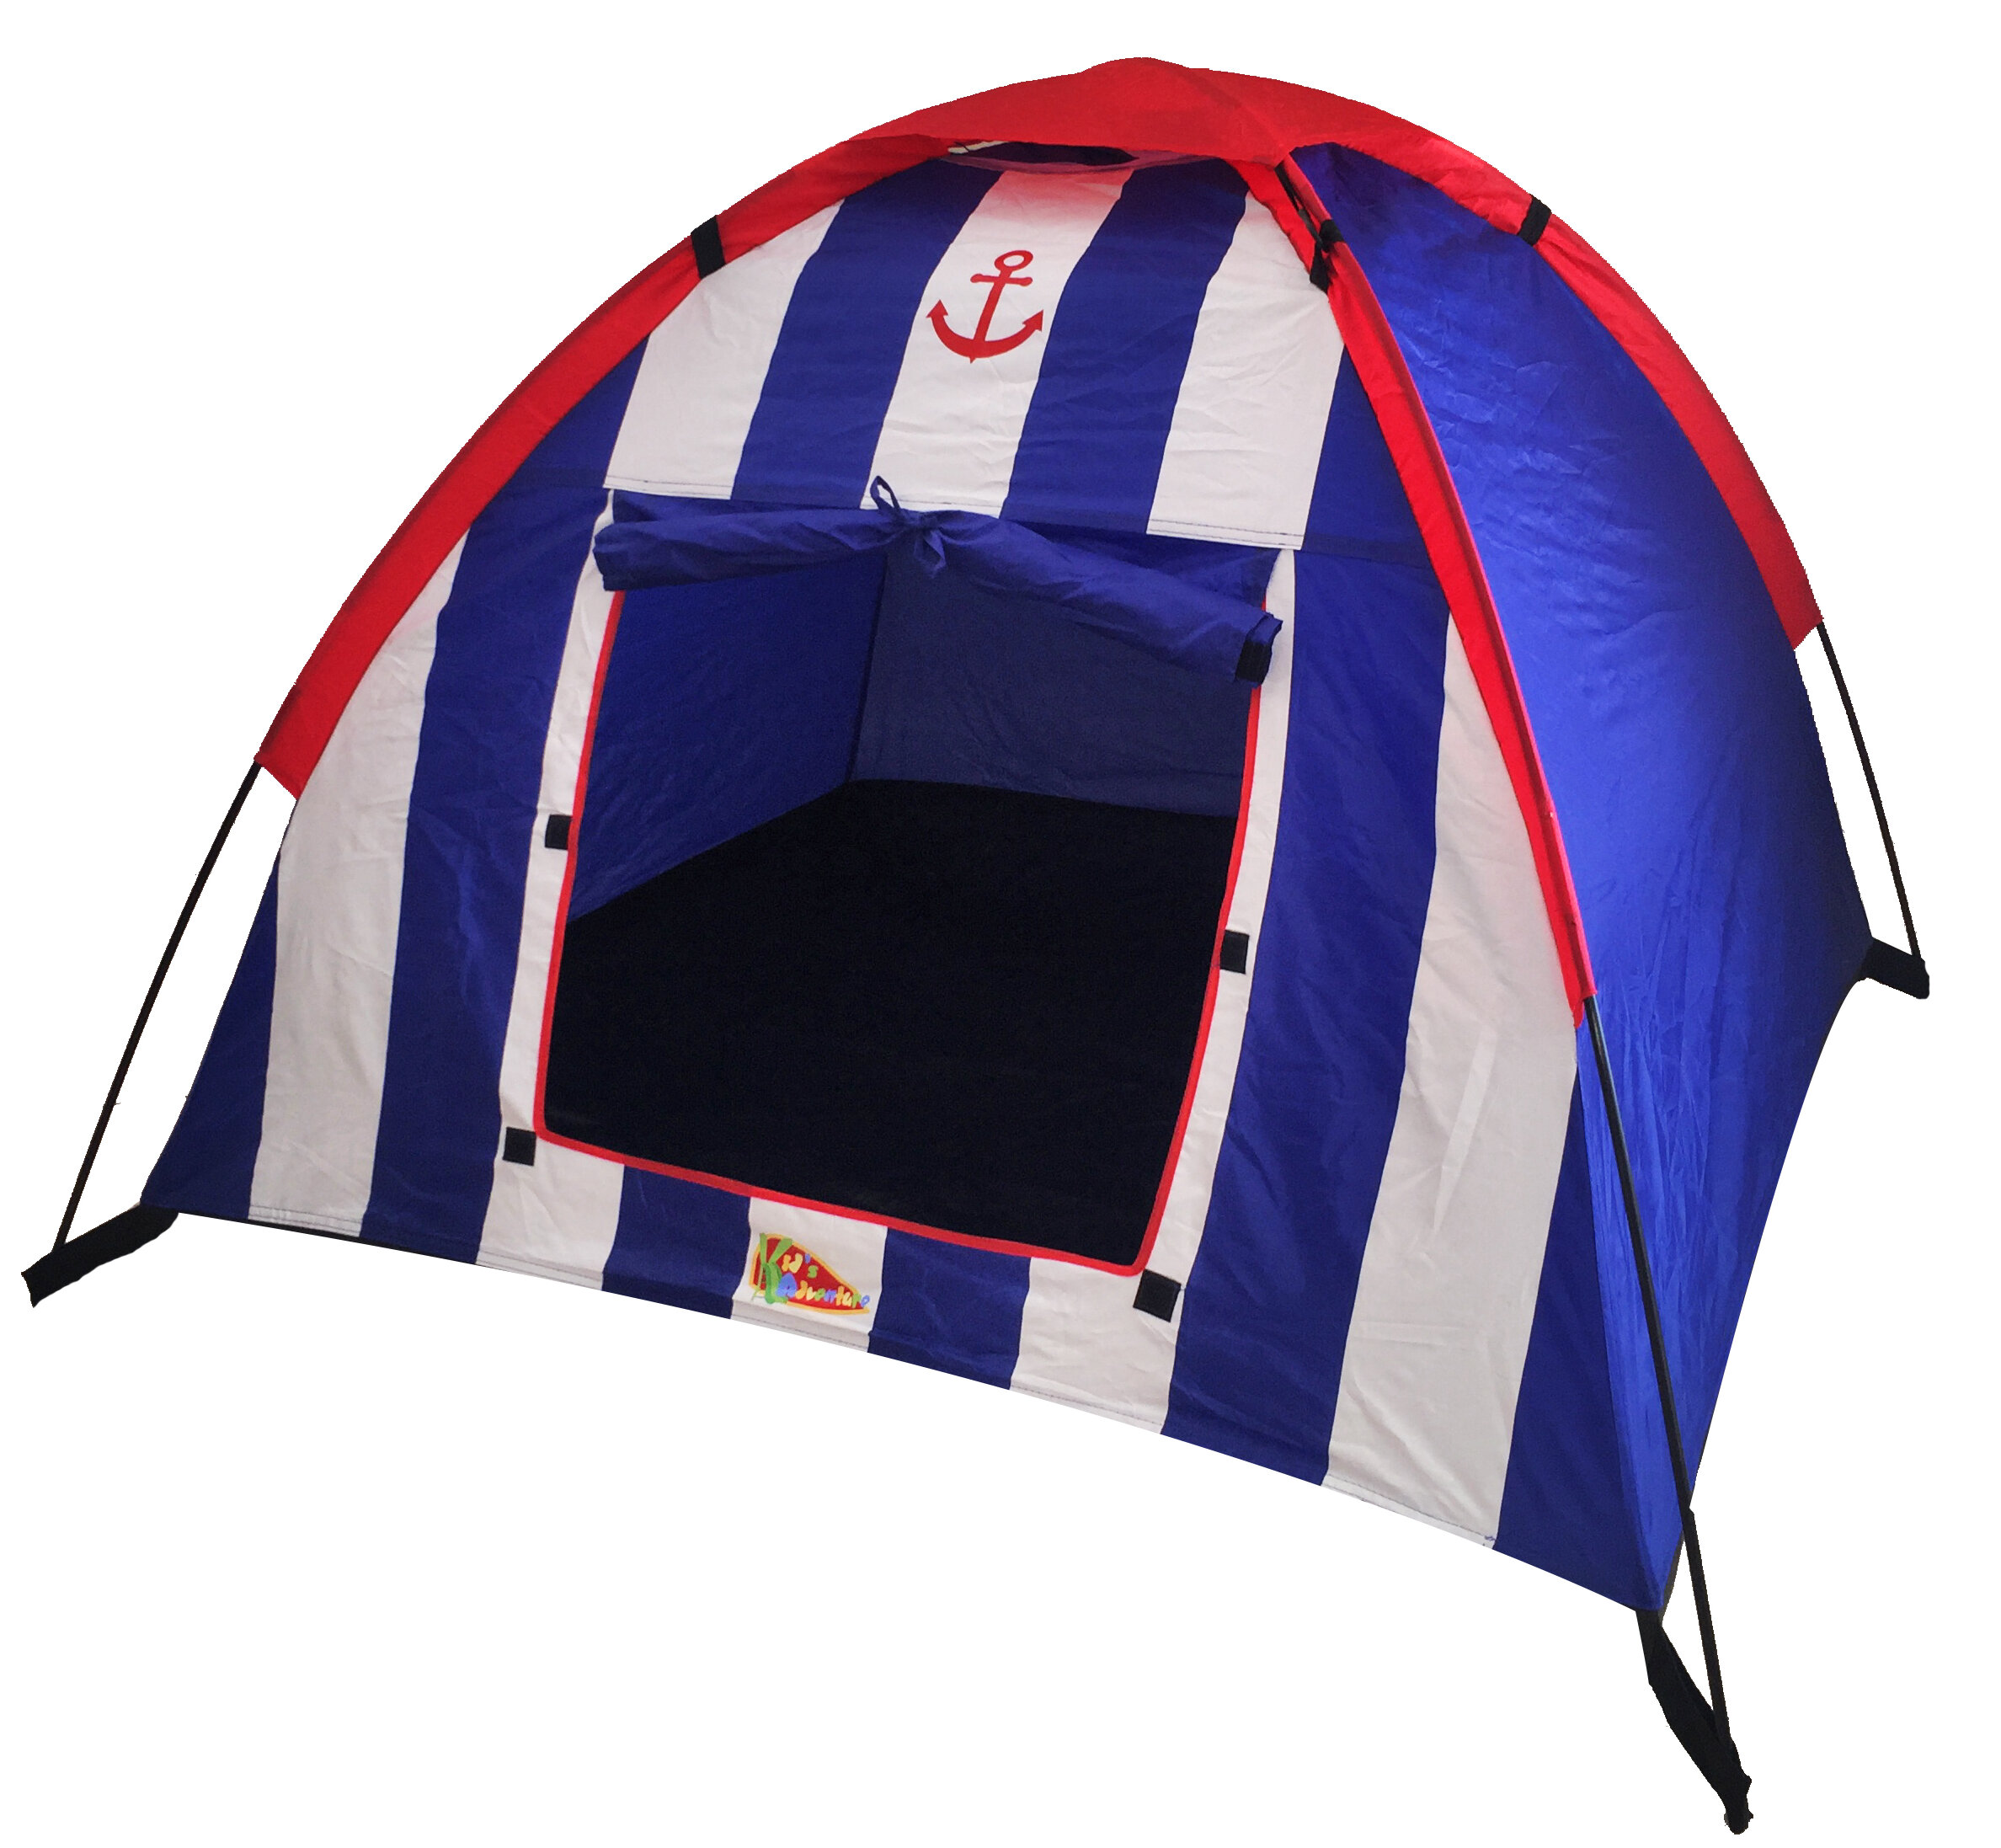 Design your Own! Hearts and Stripes Small Pet Sacks and Tunnels Tents